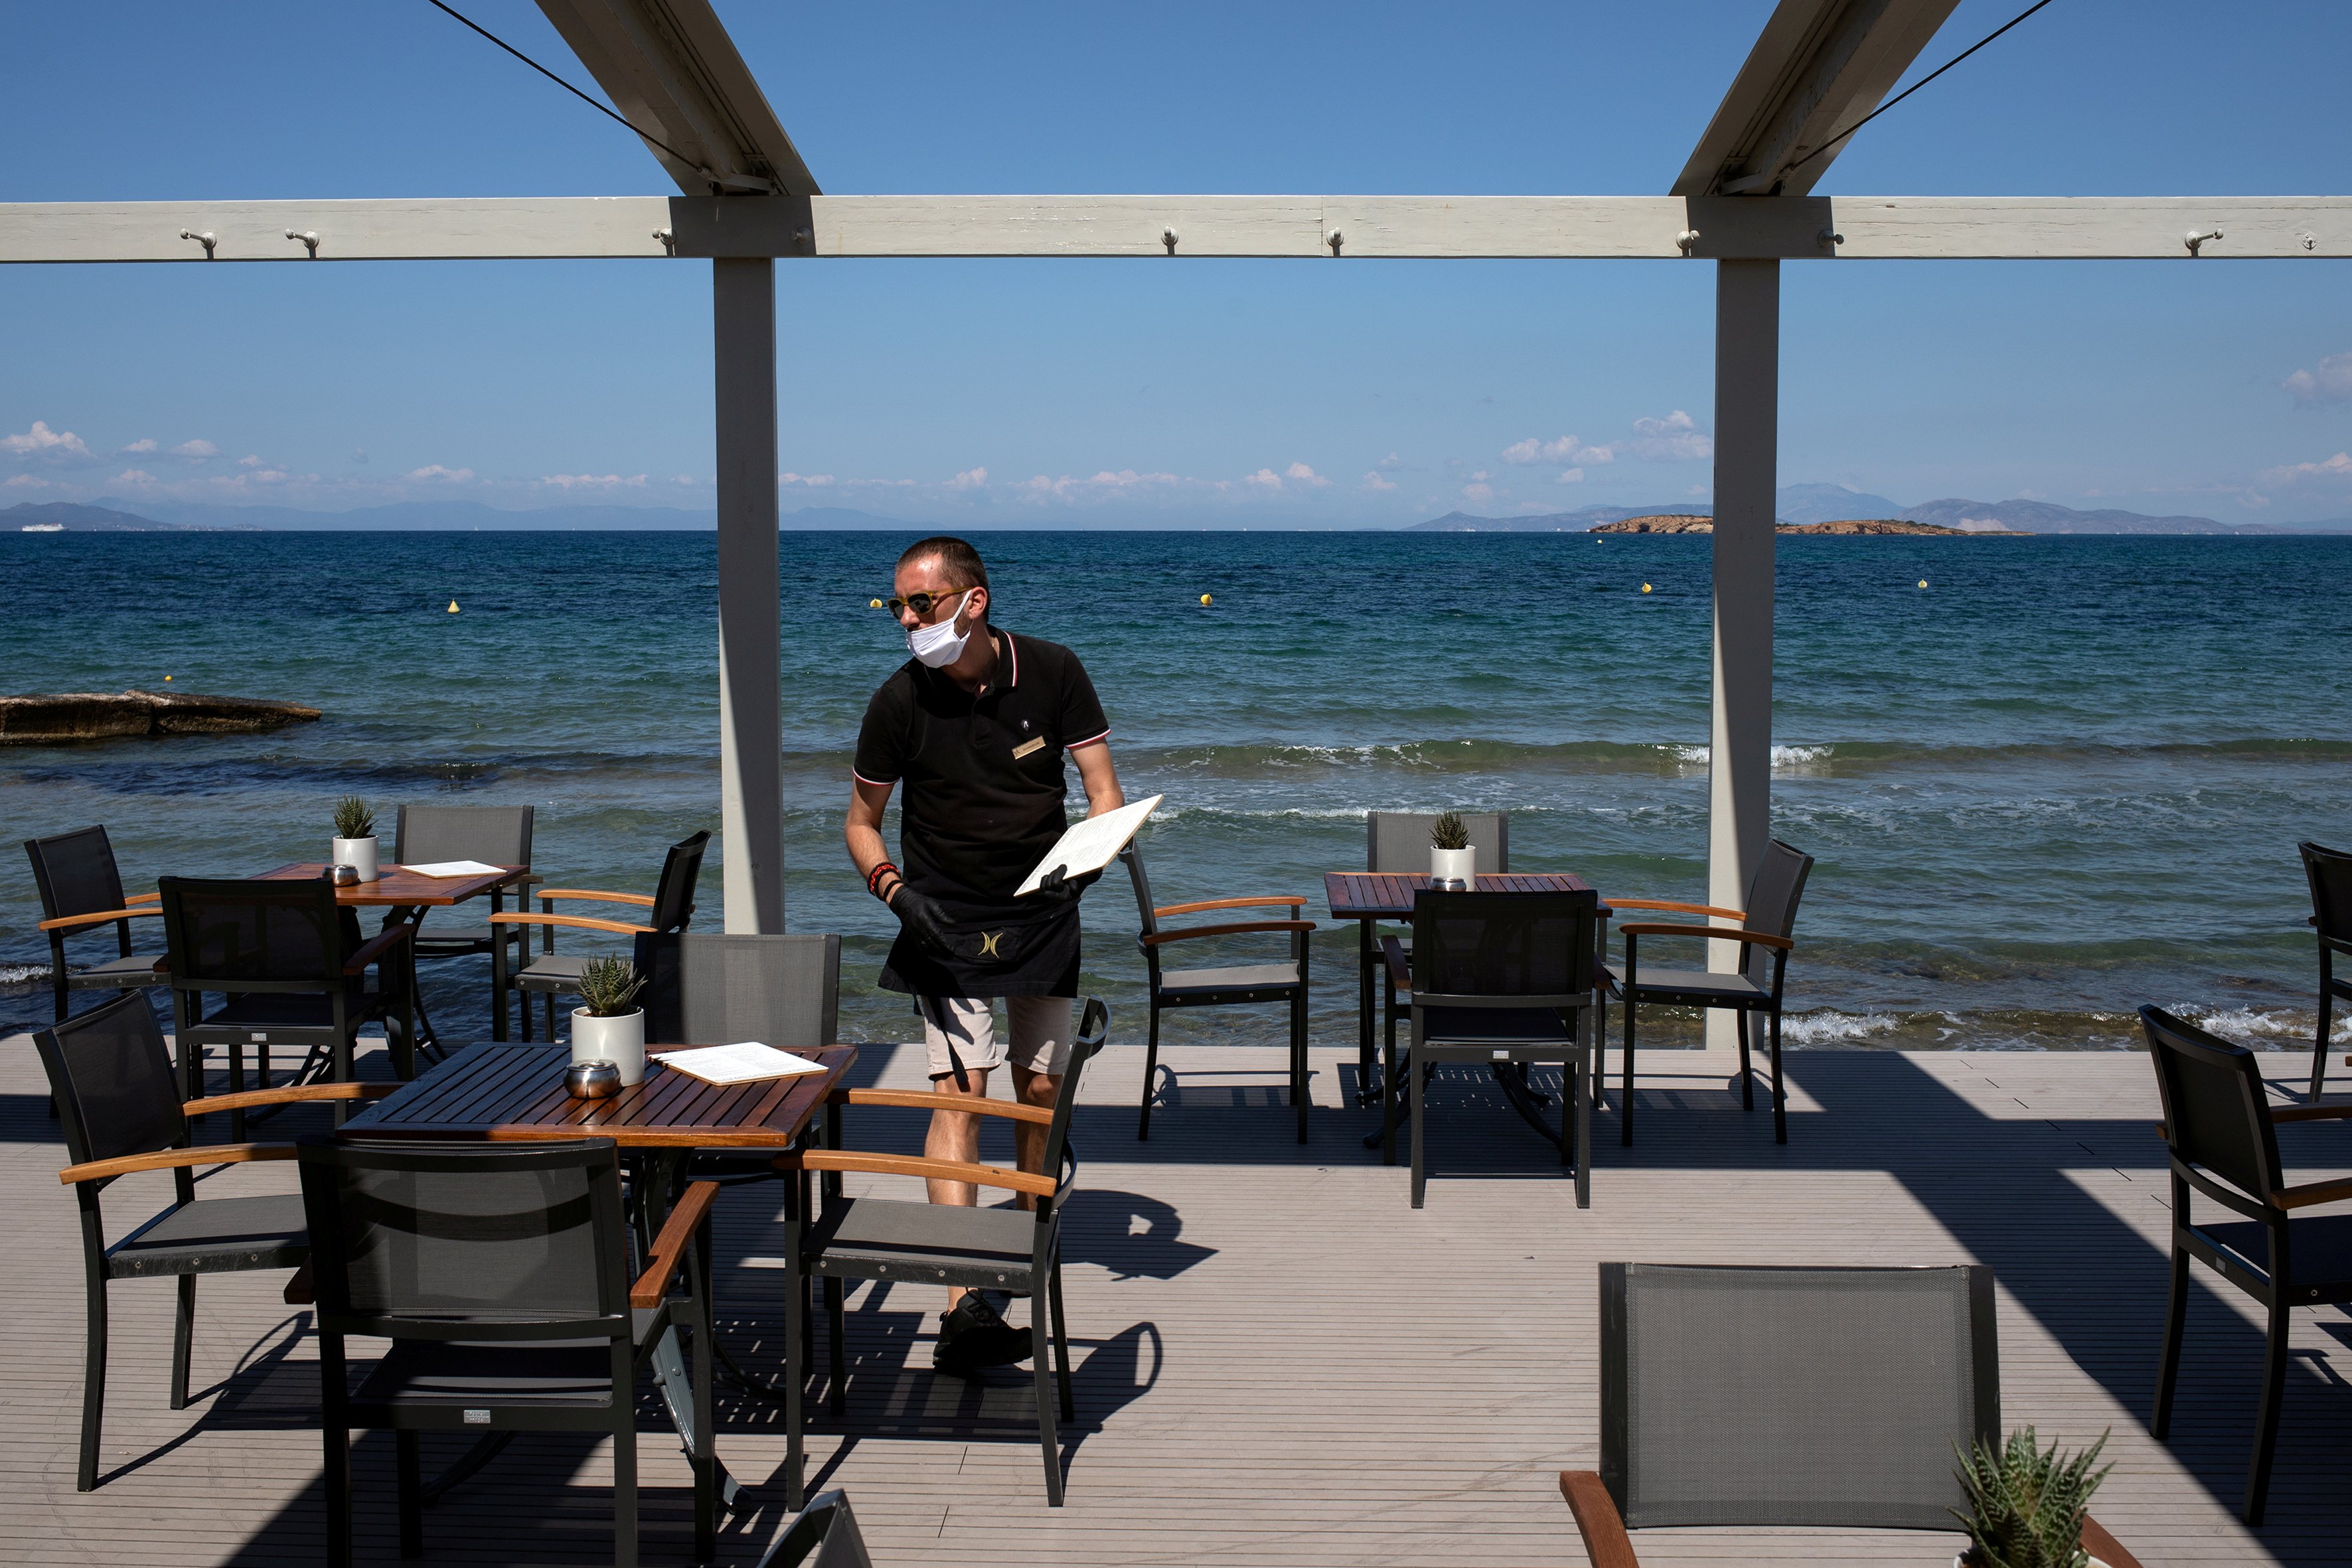 An employee wearing a protective mask, leaves a menu on a table at the beach bar of the Divani Apollon Palace hotel, on the first day of the opening of hotels in Greece, following a nationwide lockdown against the spread of the coronavirus disease (COVID-19), in Athens, Greece, June 1, 2020. REUTERS/Alkis Konstantinidis